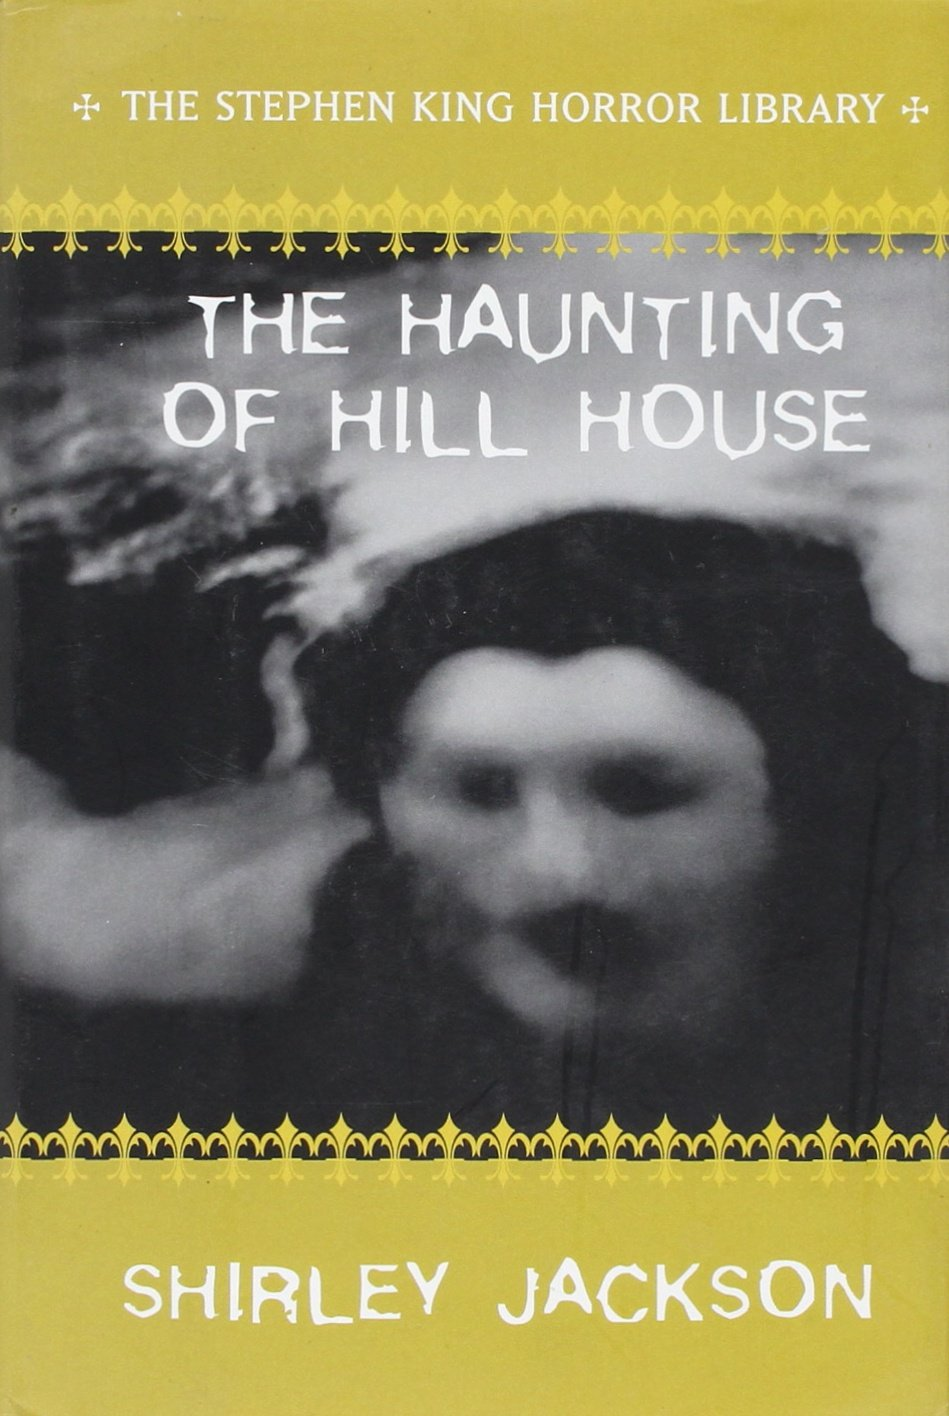 The Haunting Of Hill House With An Introduction By Stephen King The Stephen King Horror Library Jackson Shirley Amazon Com Books